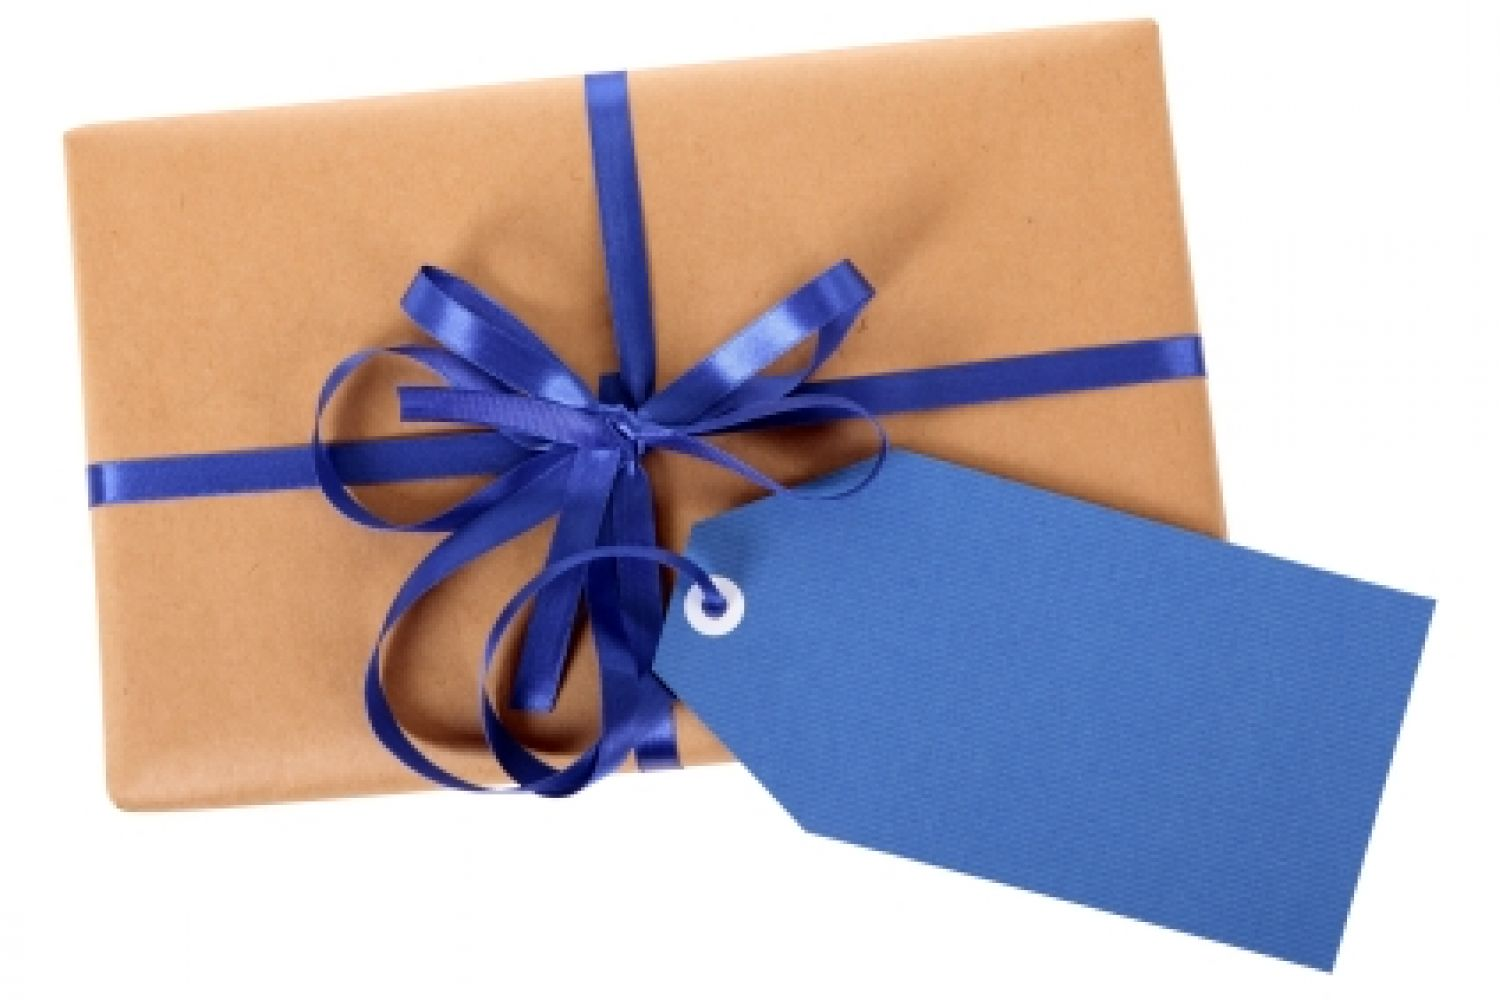 Communication and Emotional Expression (Part 3): The Unorthodox Gift